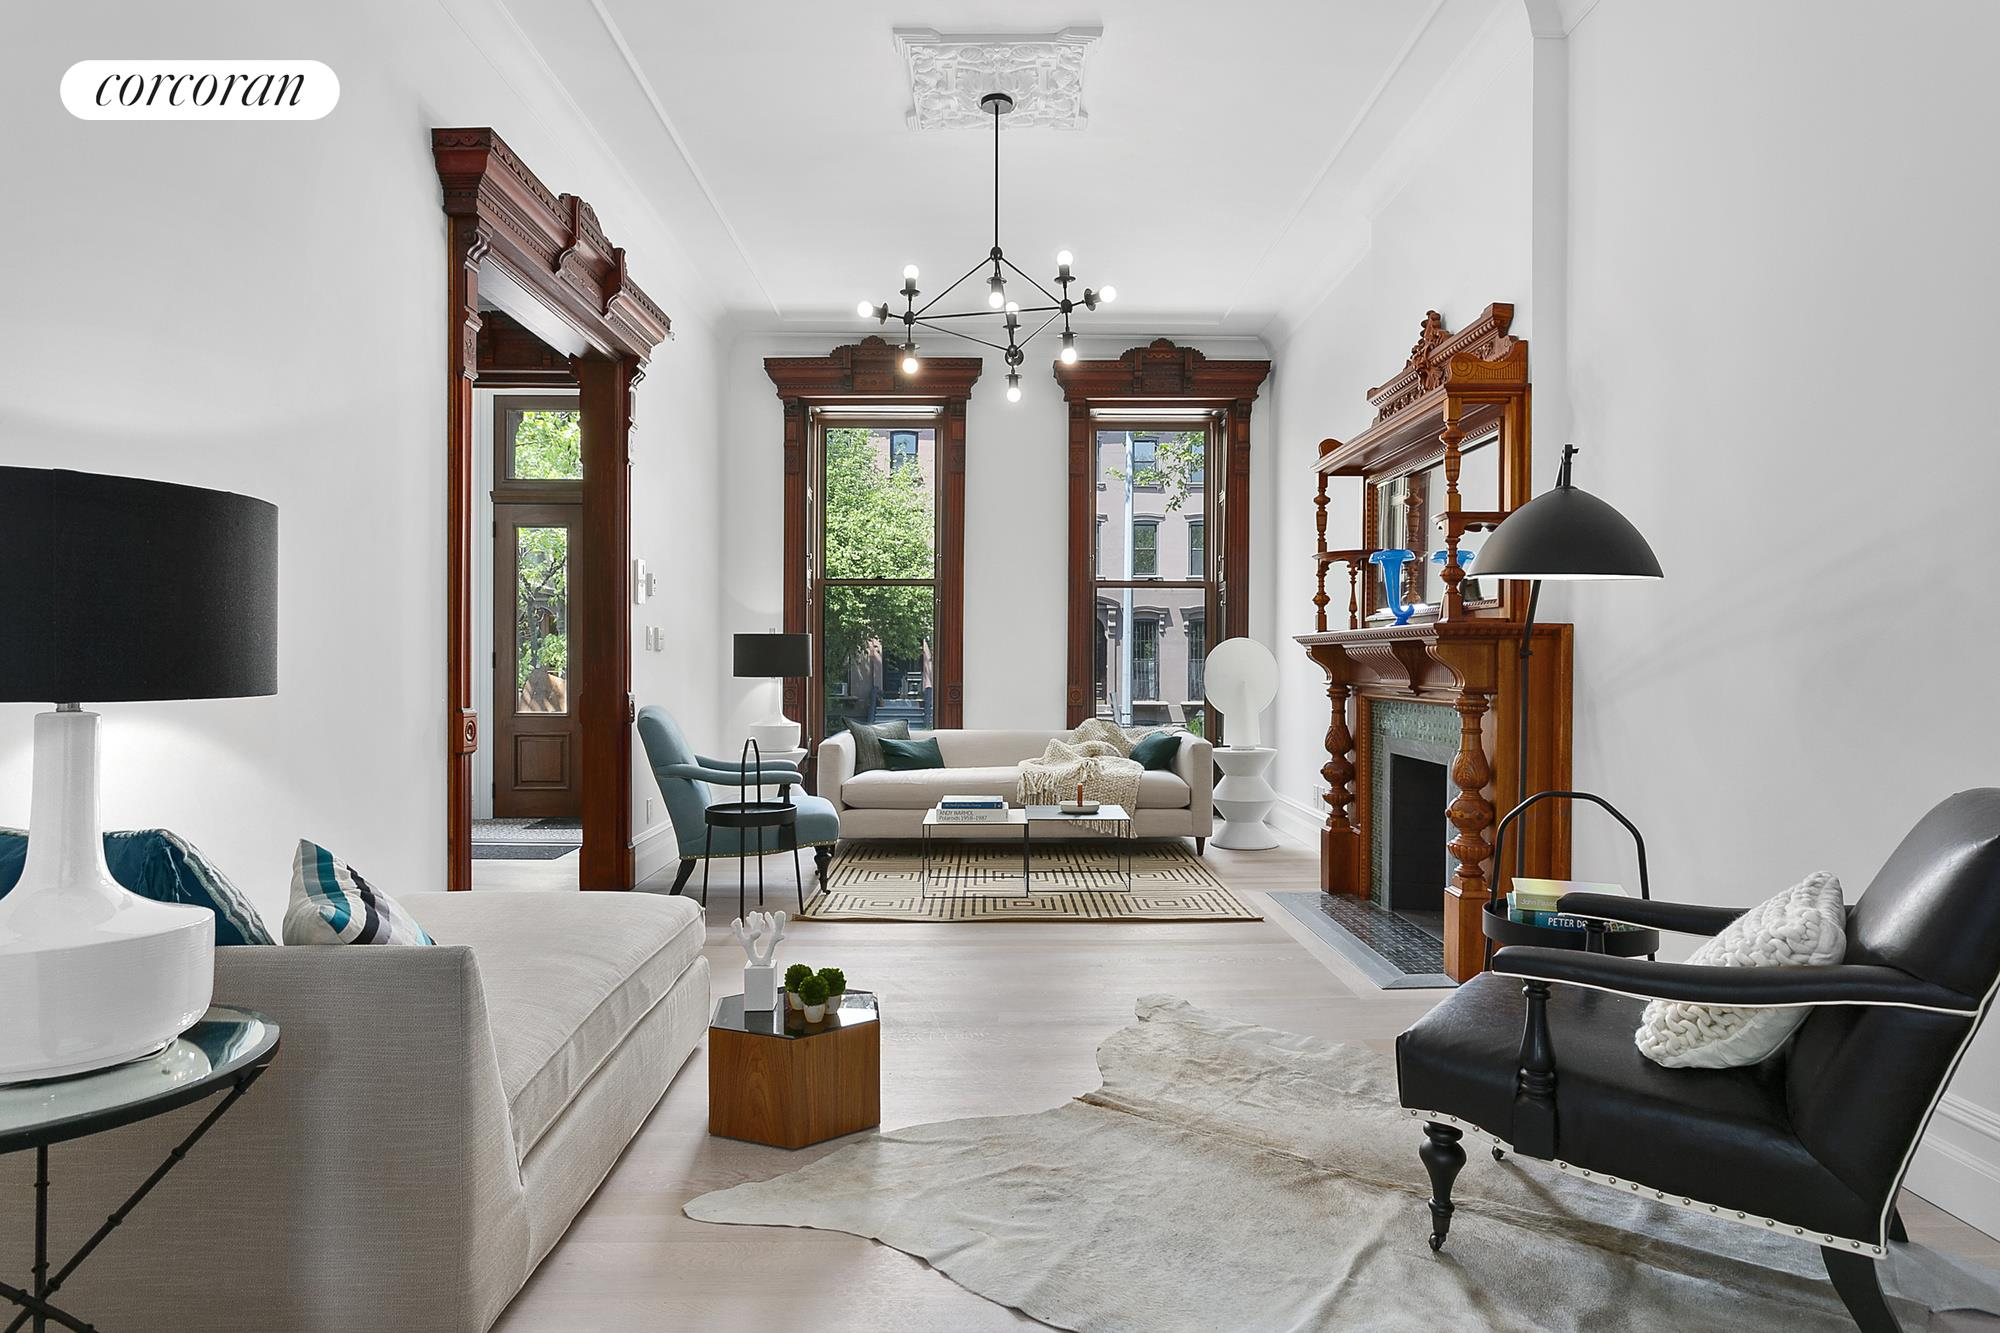 194 MacDonough Street, Grand Parlor Mixing Traditional & Contemporary